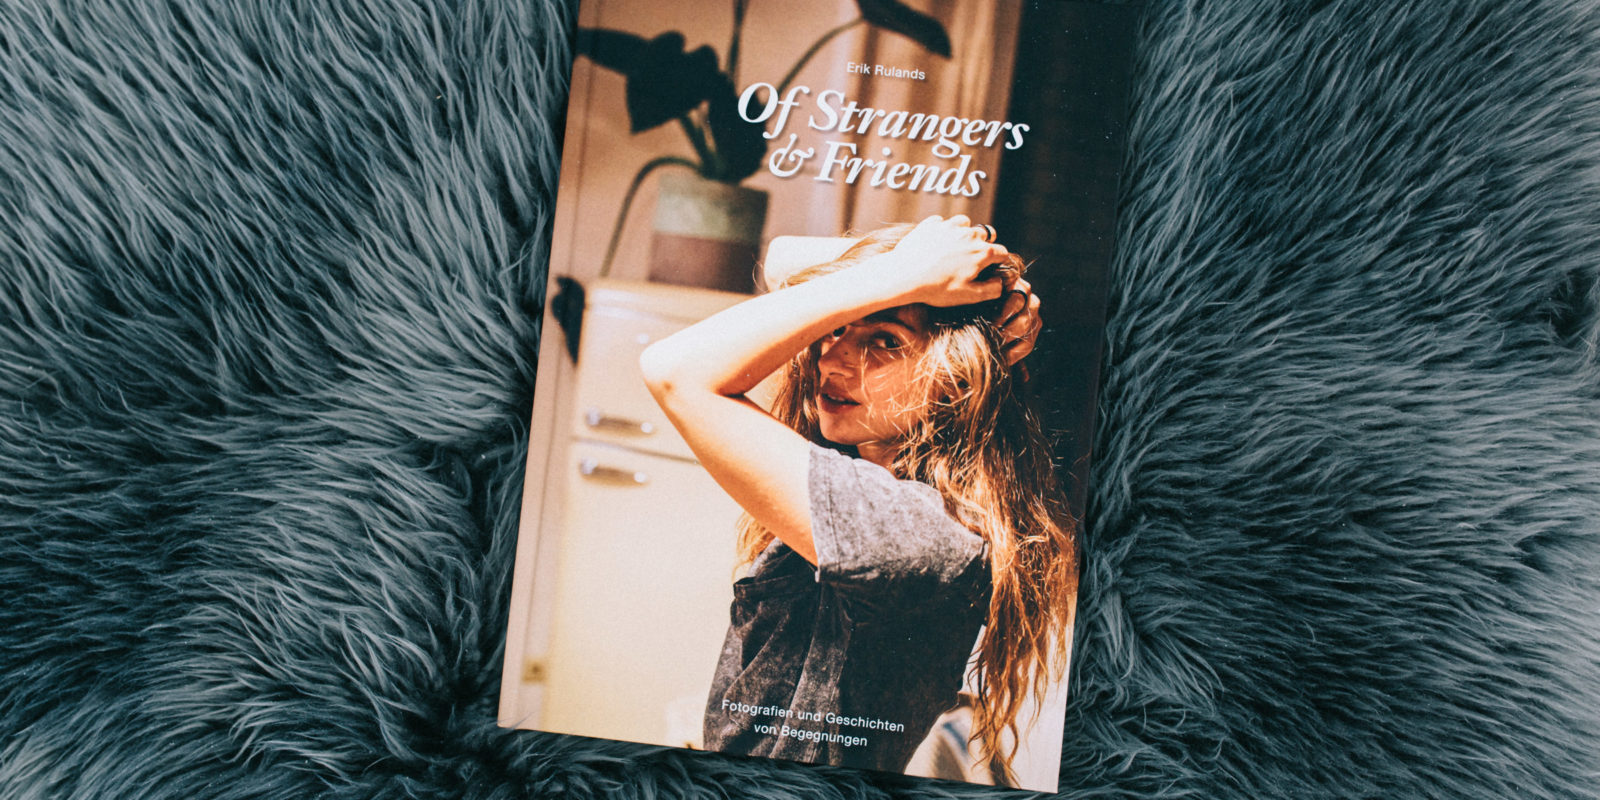 of-strangers-and-friends-erik-rulands-photobooks_cover